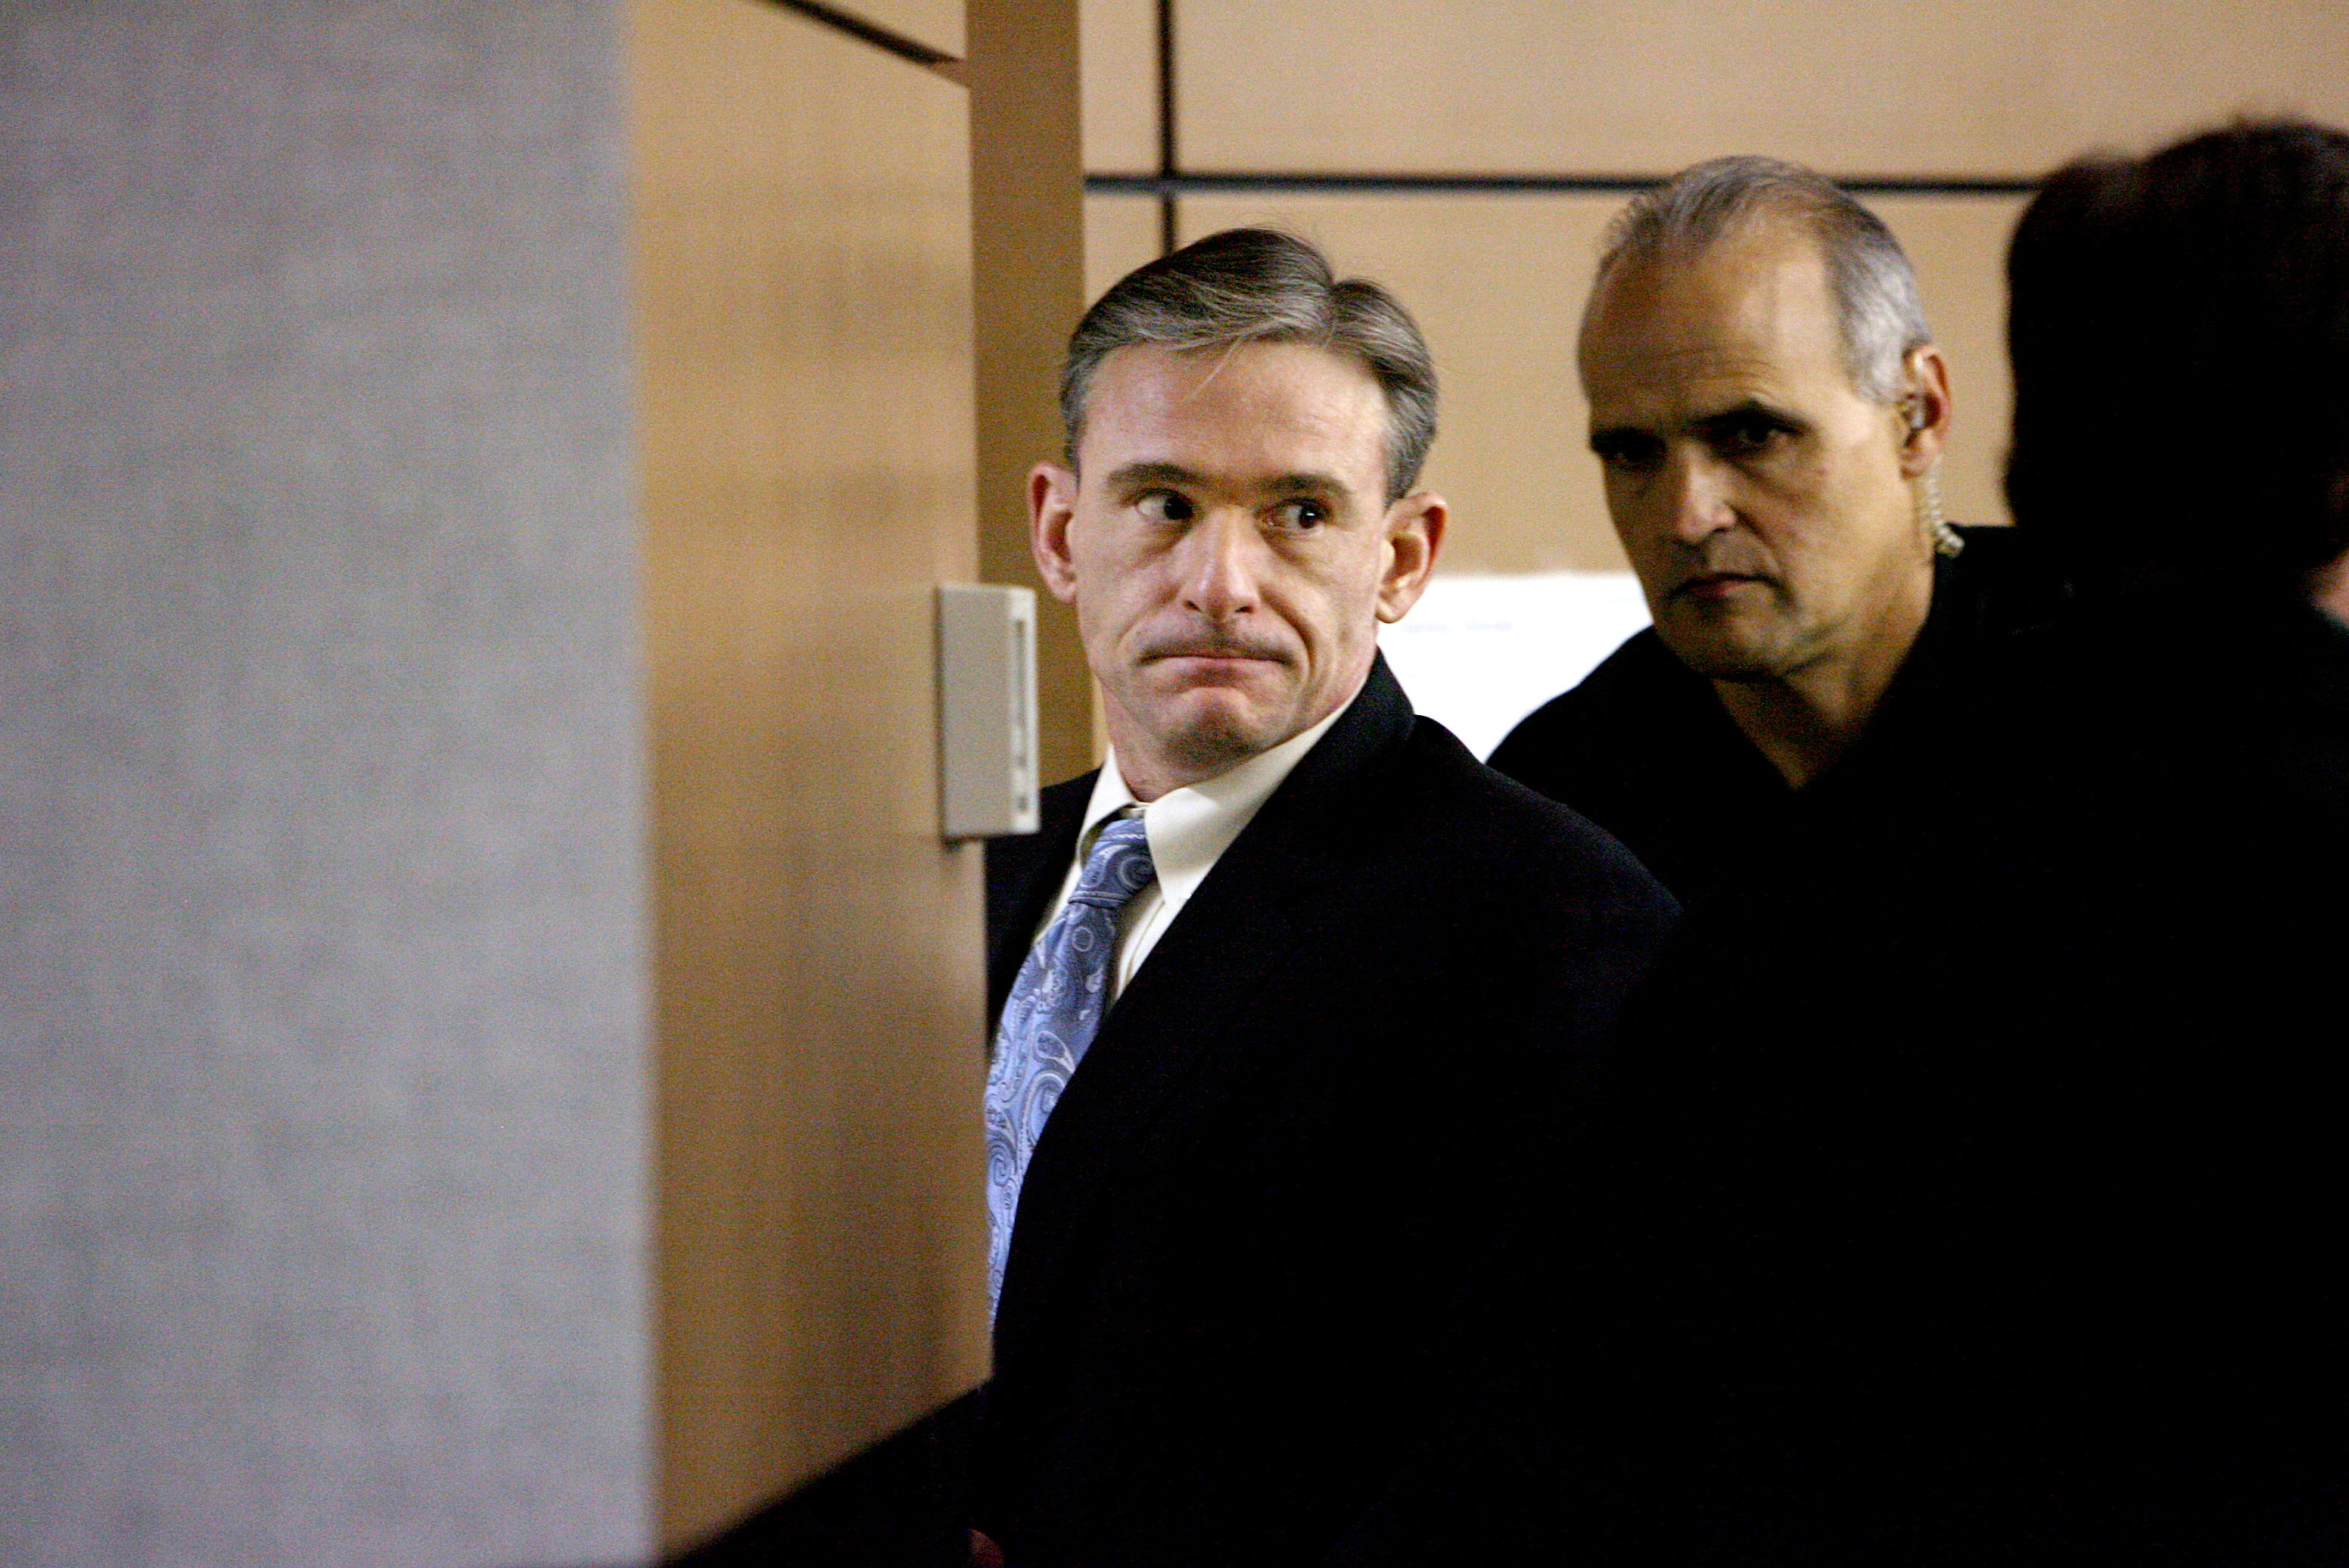 Daniel Lee Alexander, 41, a Palm Beach Gardens handyman accused of killing his roommate and disposing of his severed body in four concrete-filled containers, exits the court for a lunch break before testifying during the third day of the murder trial at the Palm Beach County Courthouse in West Palm Beach on Jan. 7, 2011.